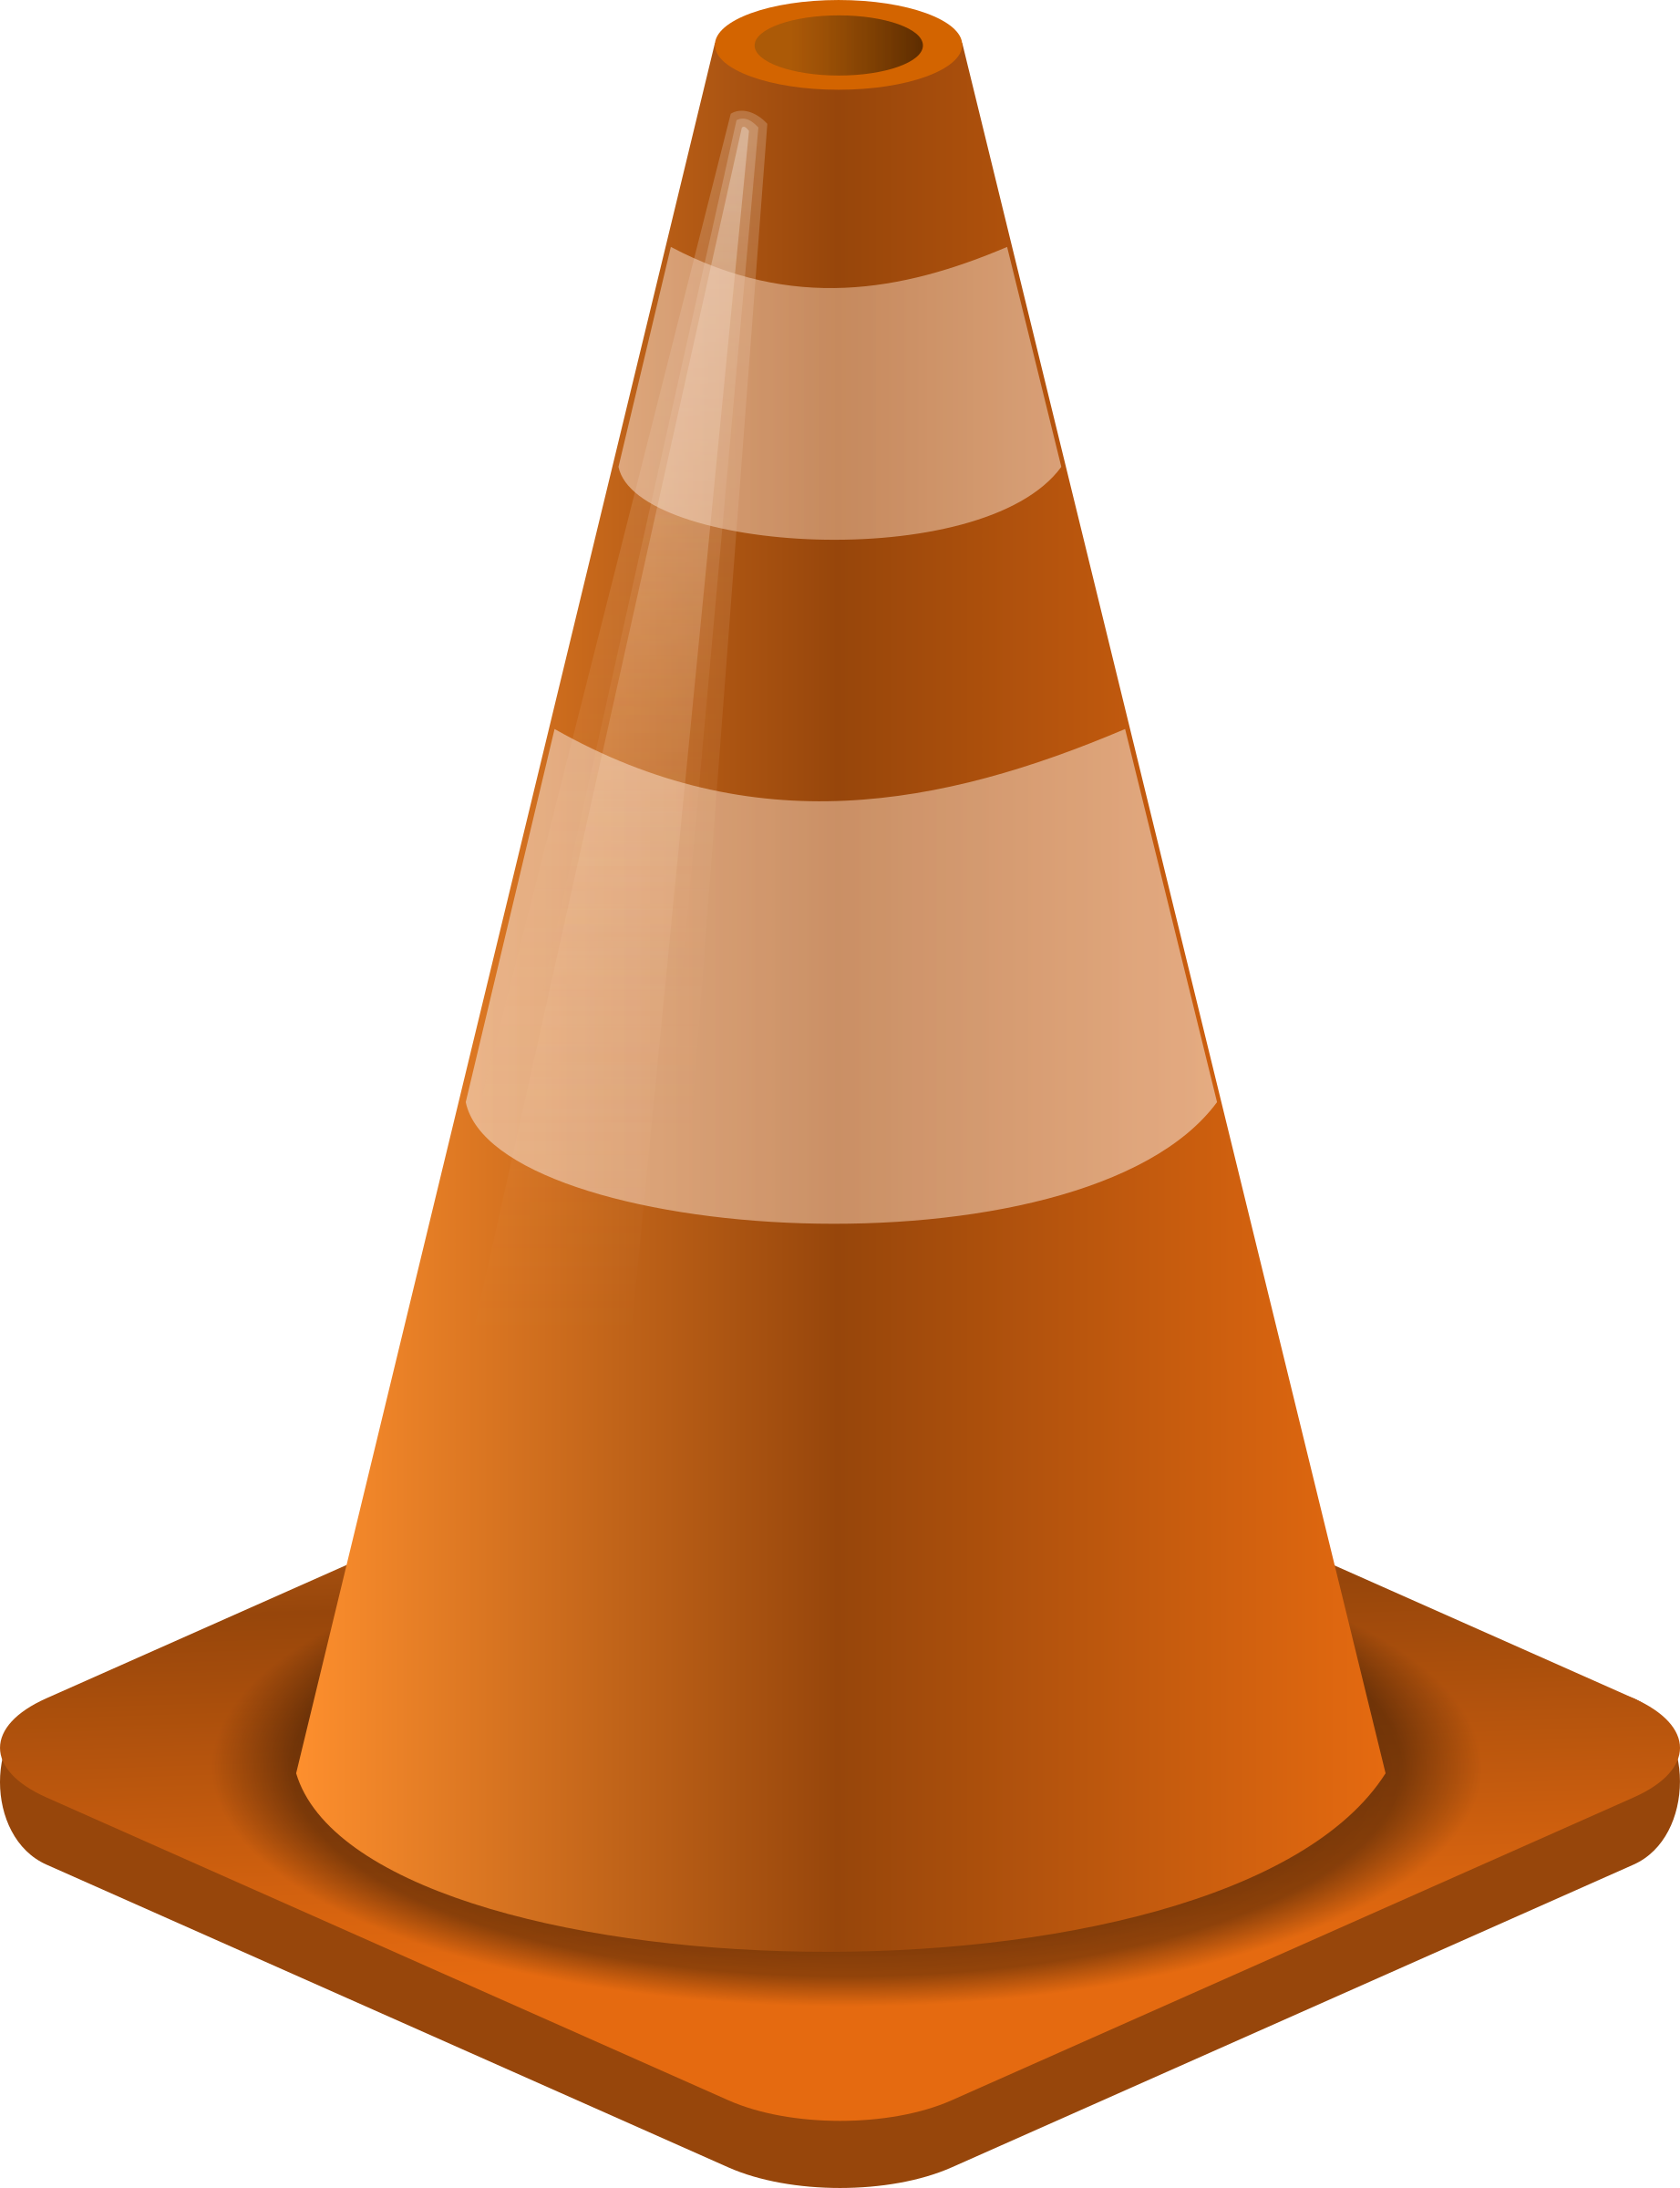 Cone clipart road work. Construction big image png